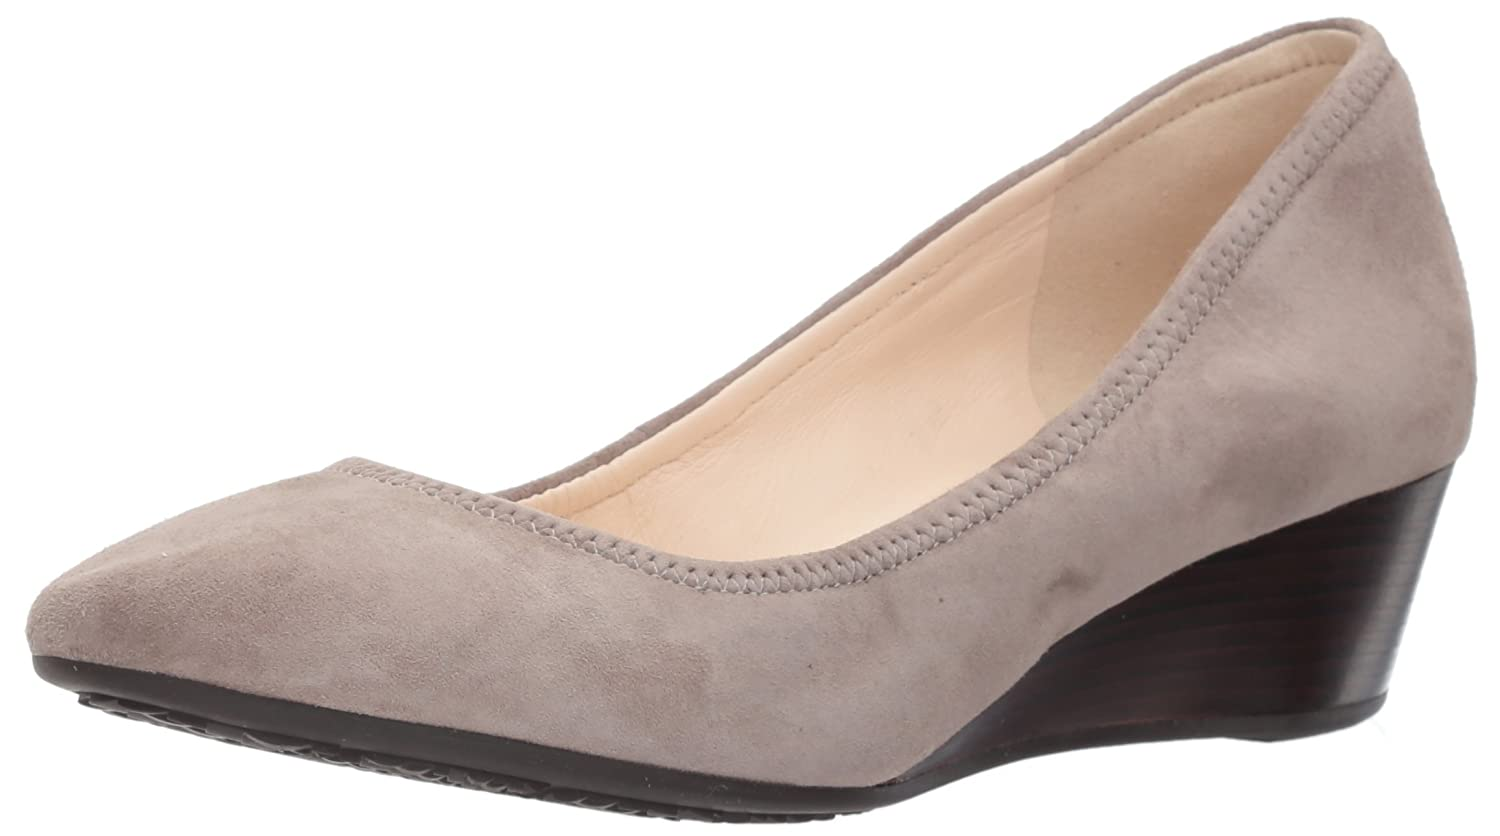 Rockridge Suede Cole Haan Women's Sadie Wedge 40MM Pump